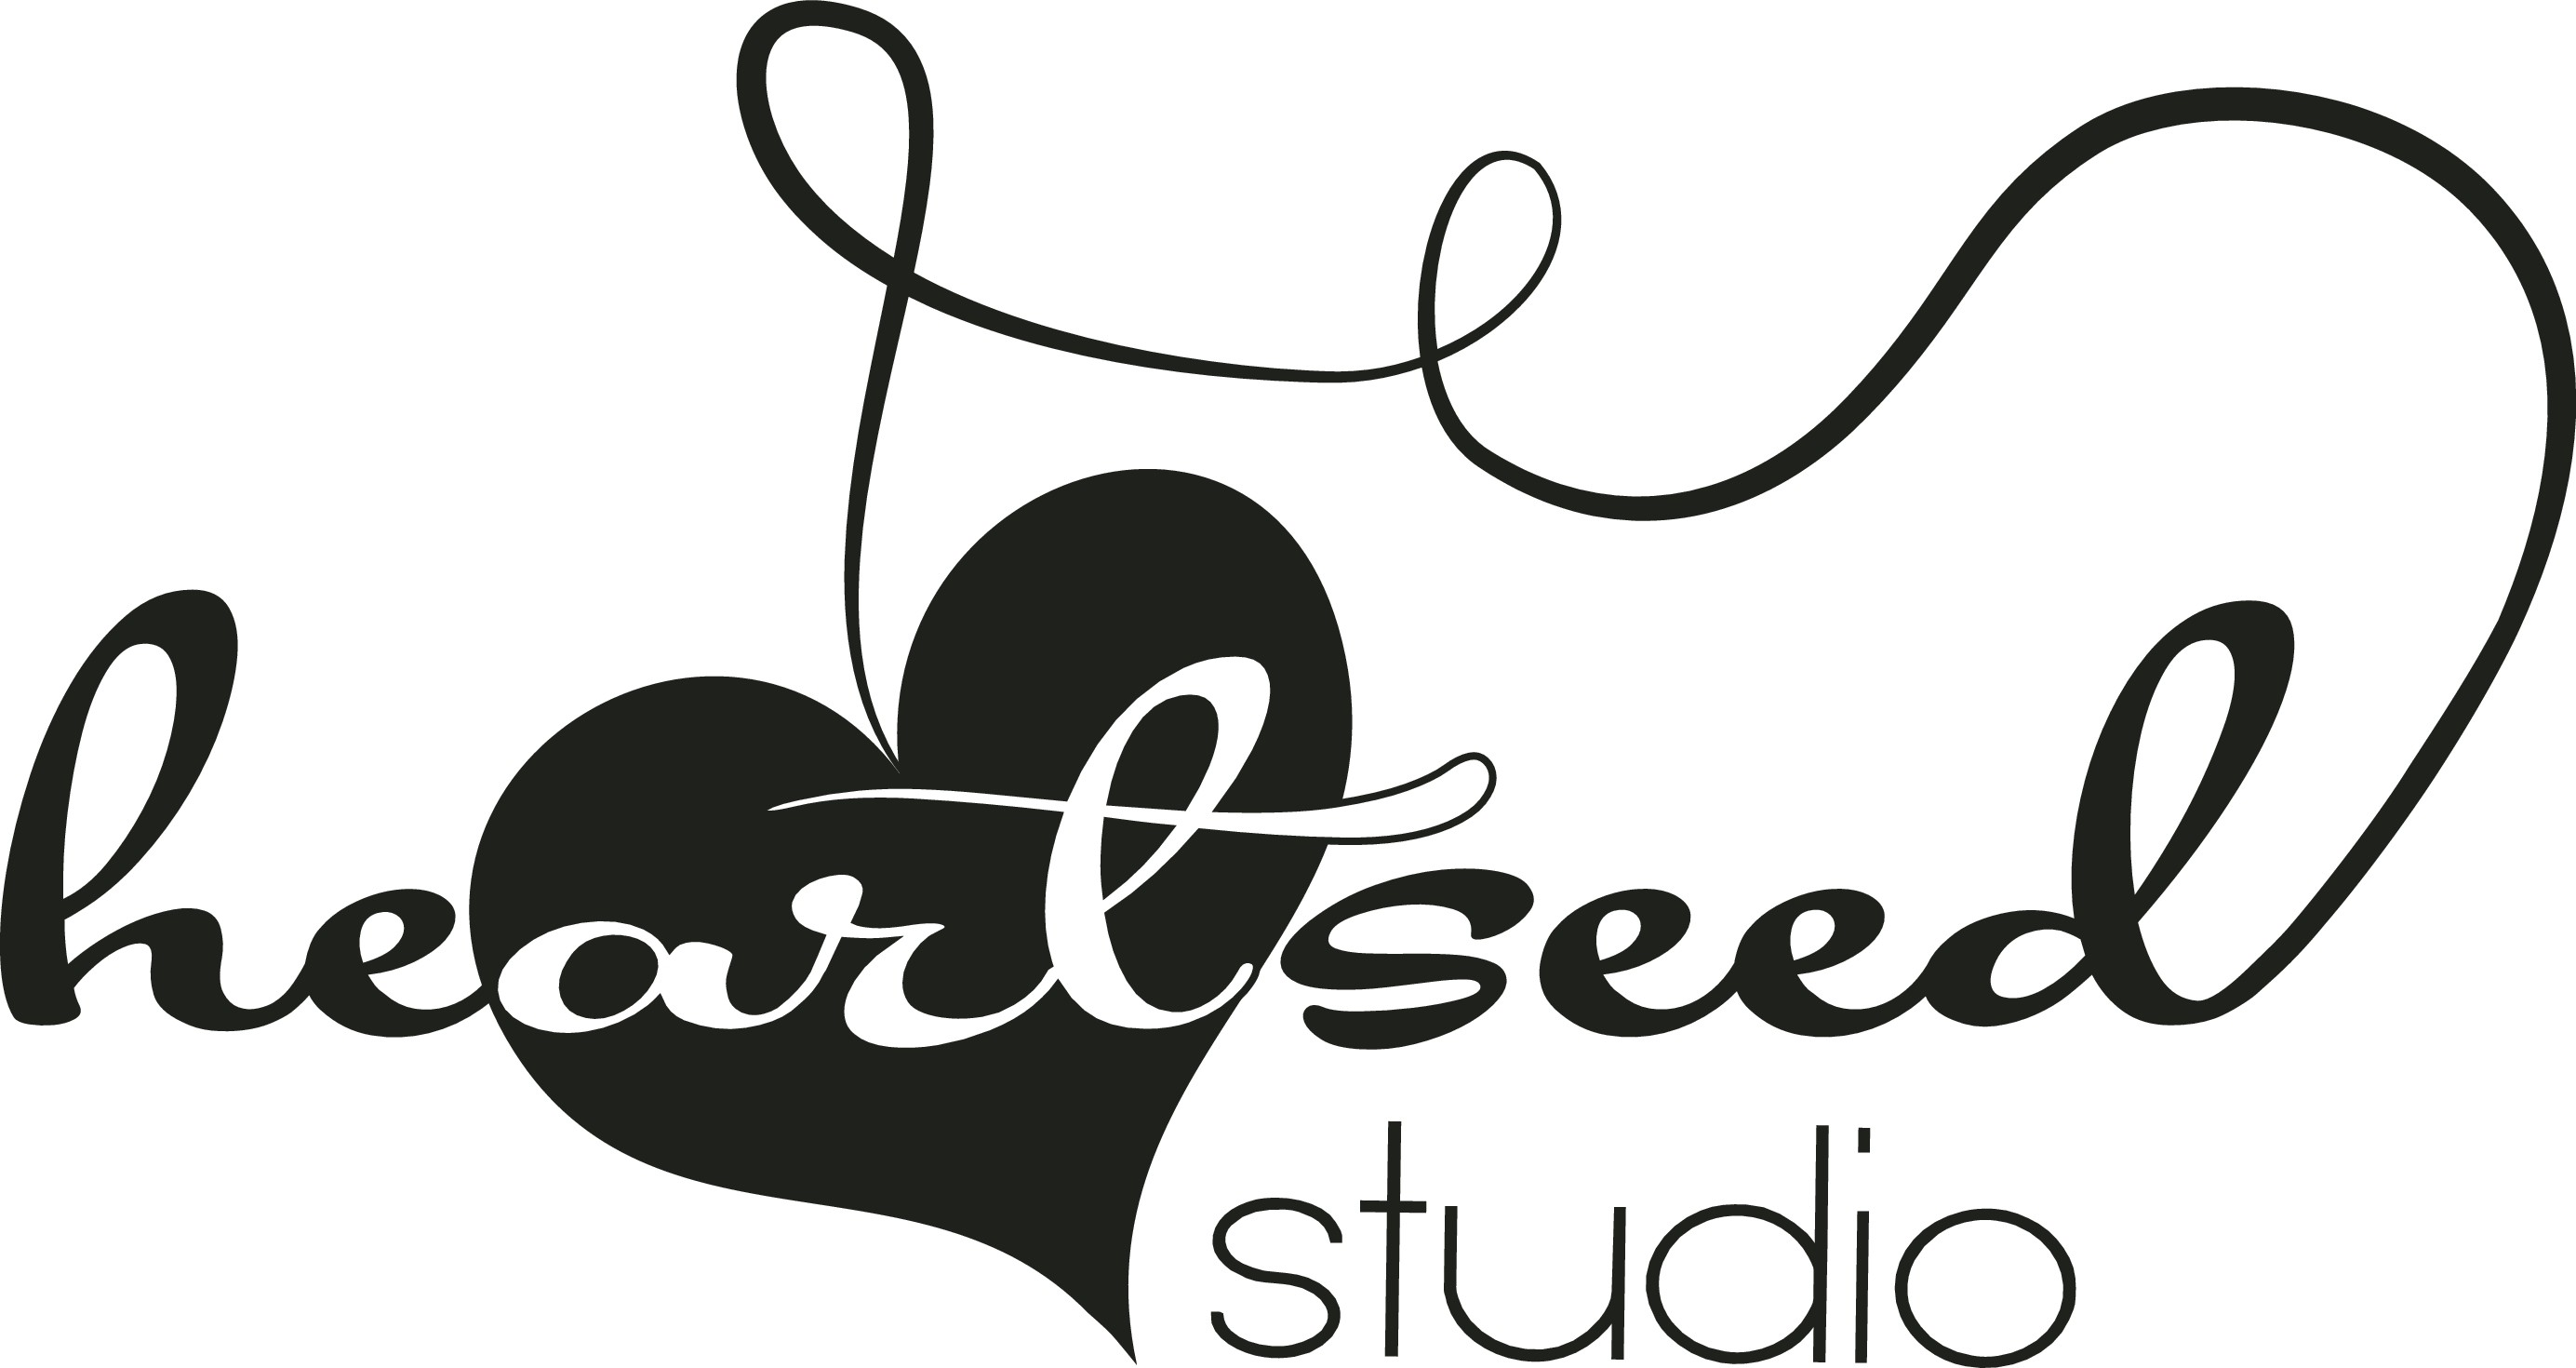 A workshop venue for artists and makers in beautiful downtown Colorado Springs Co